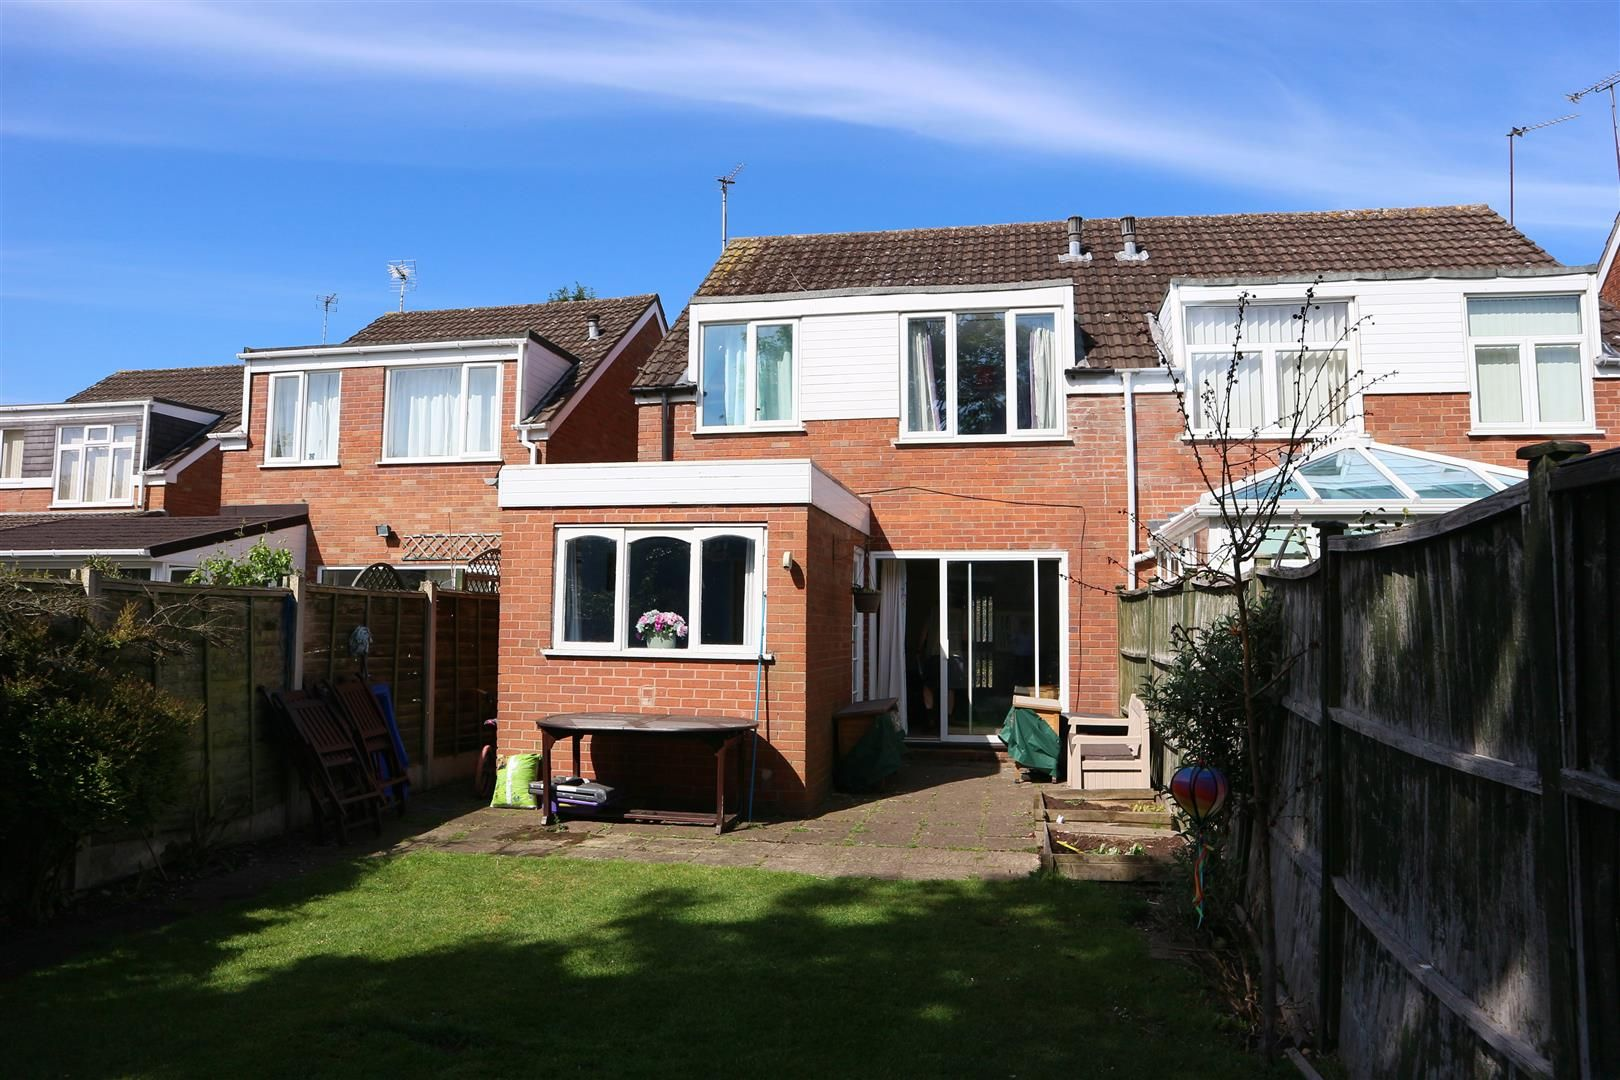 3 bed semi-detached for sale in Kinver 9